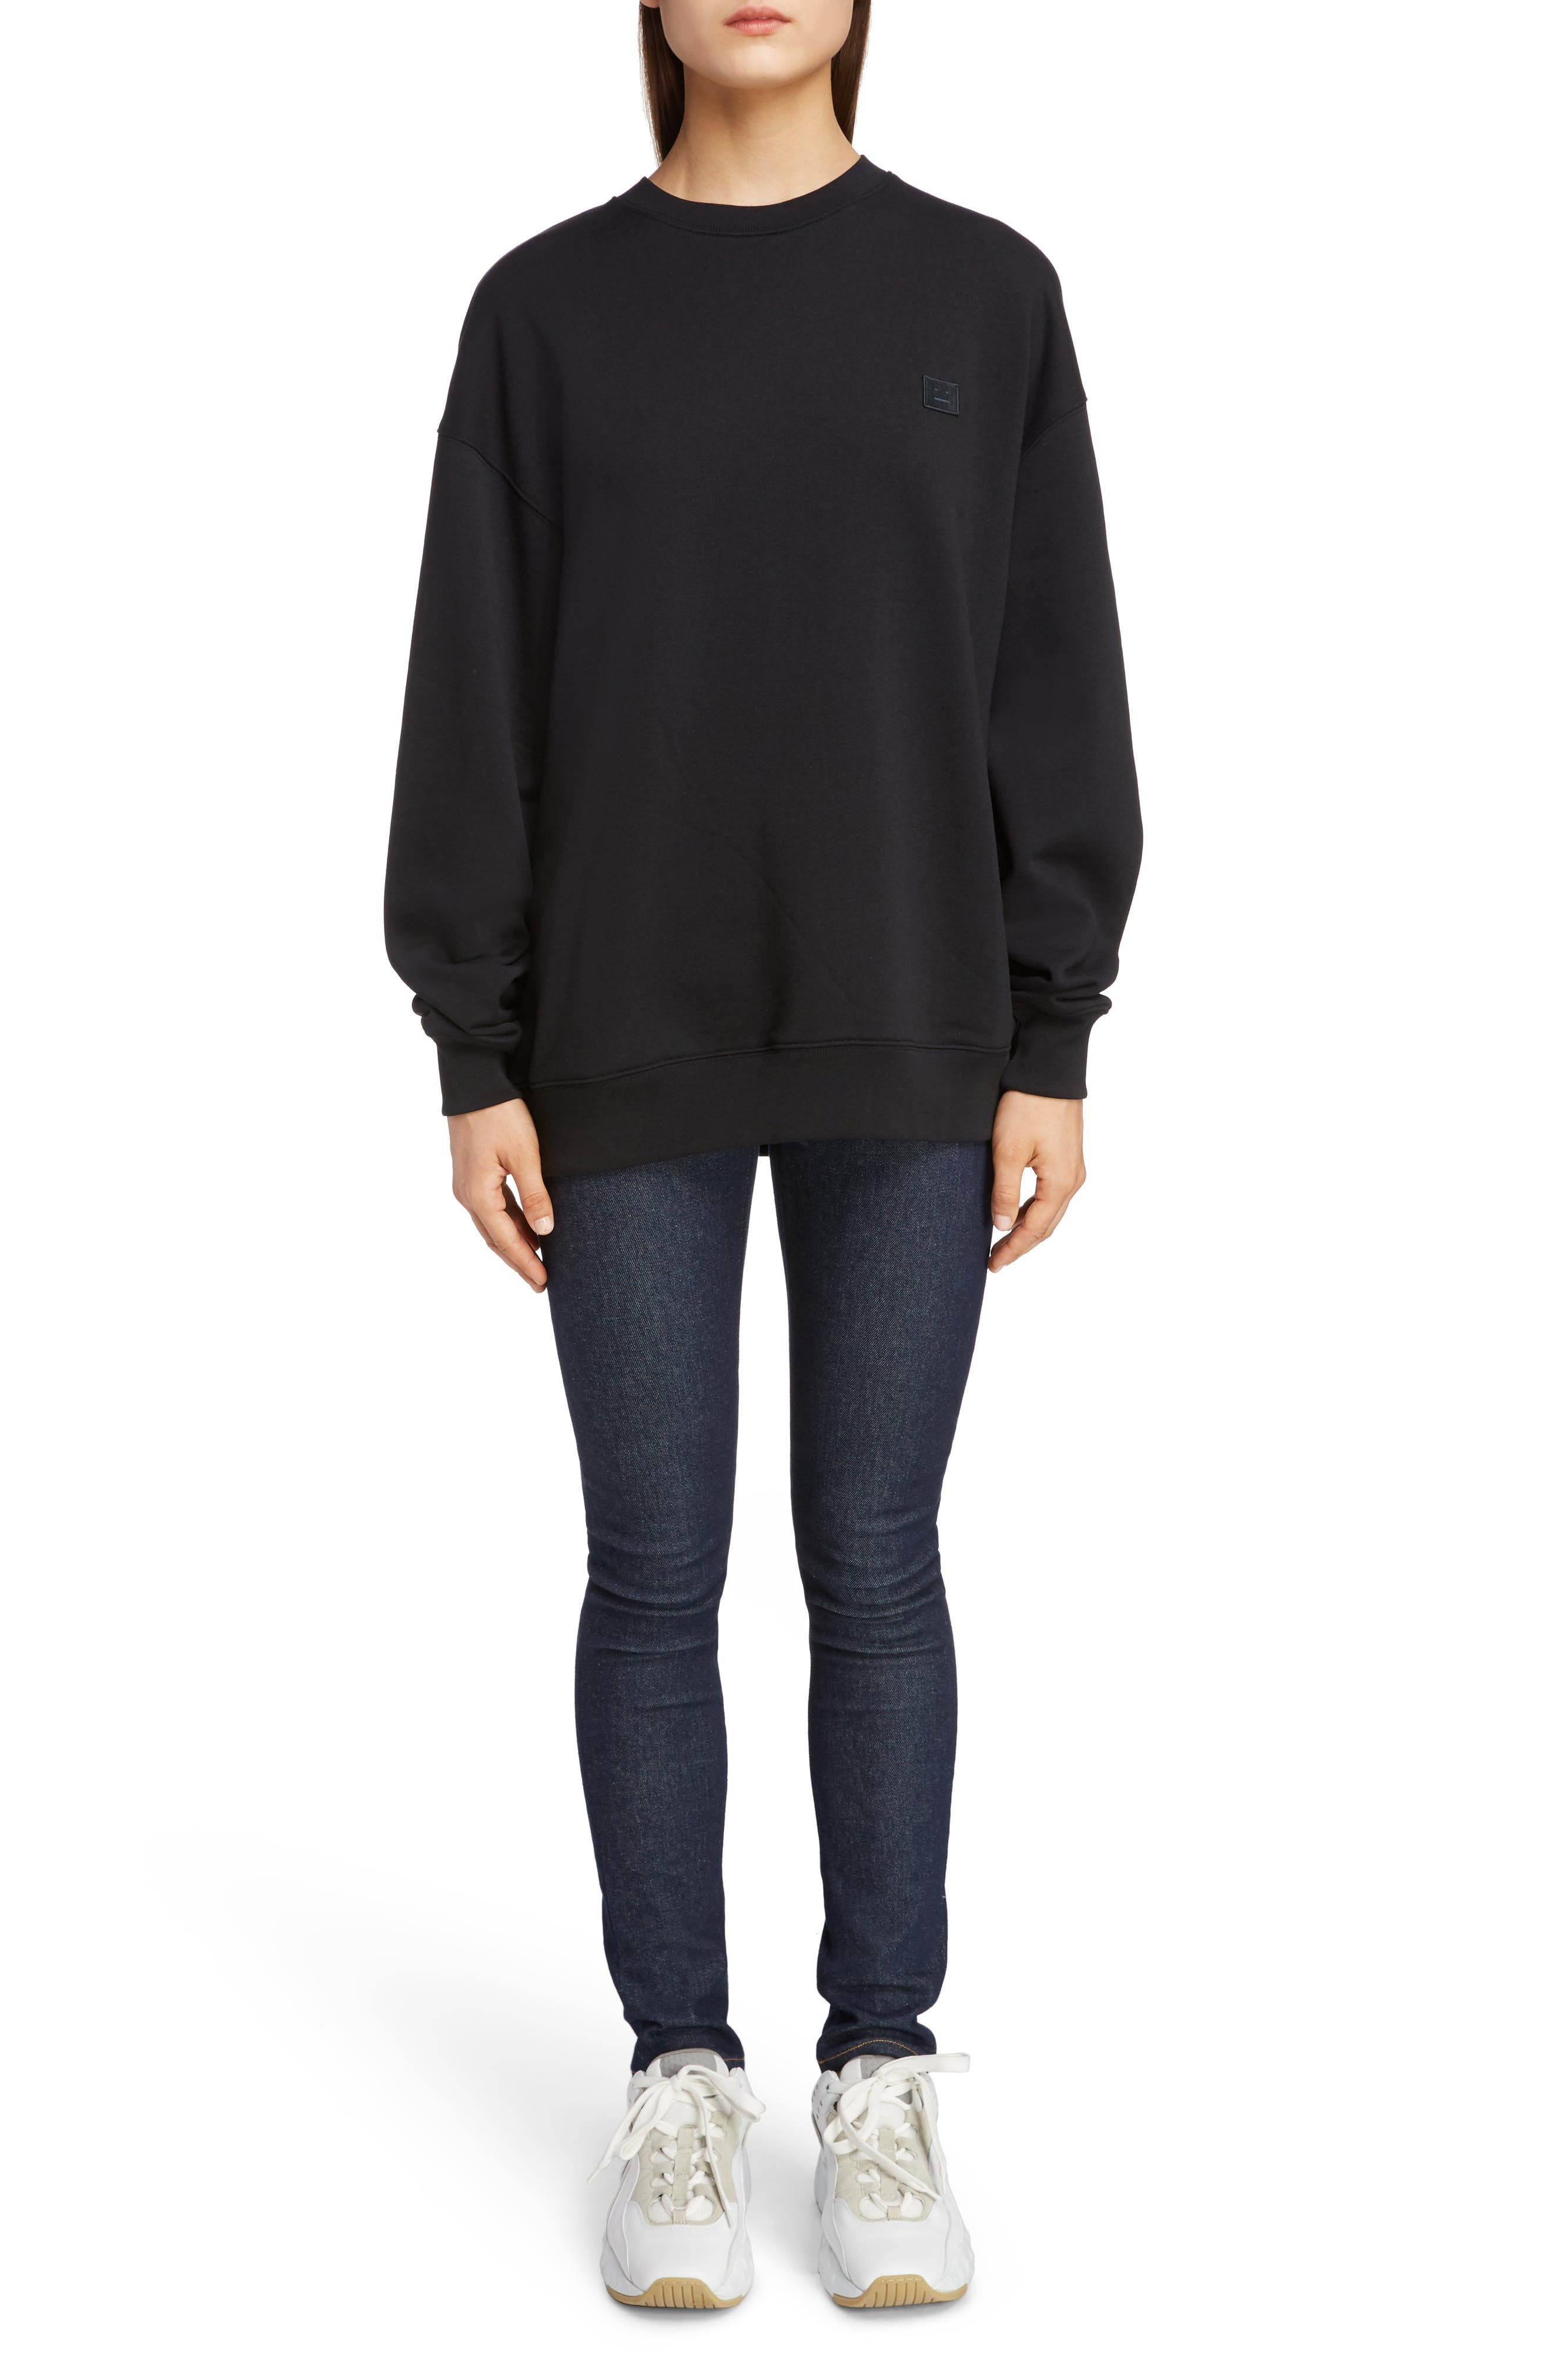 ACNE STUDIOS,                             Forba Face Sweatshirt,                             Alternate thumbnail 6, color,                             BLACK